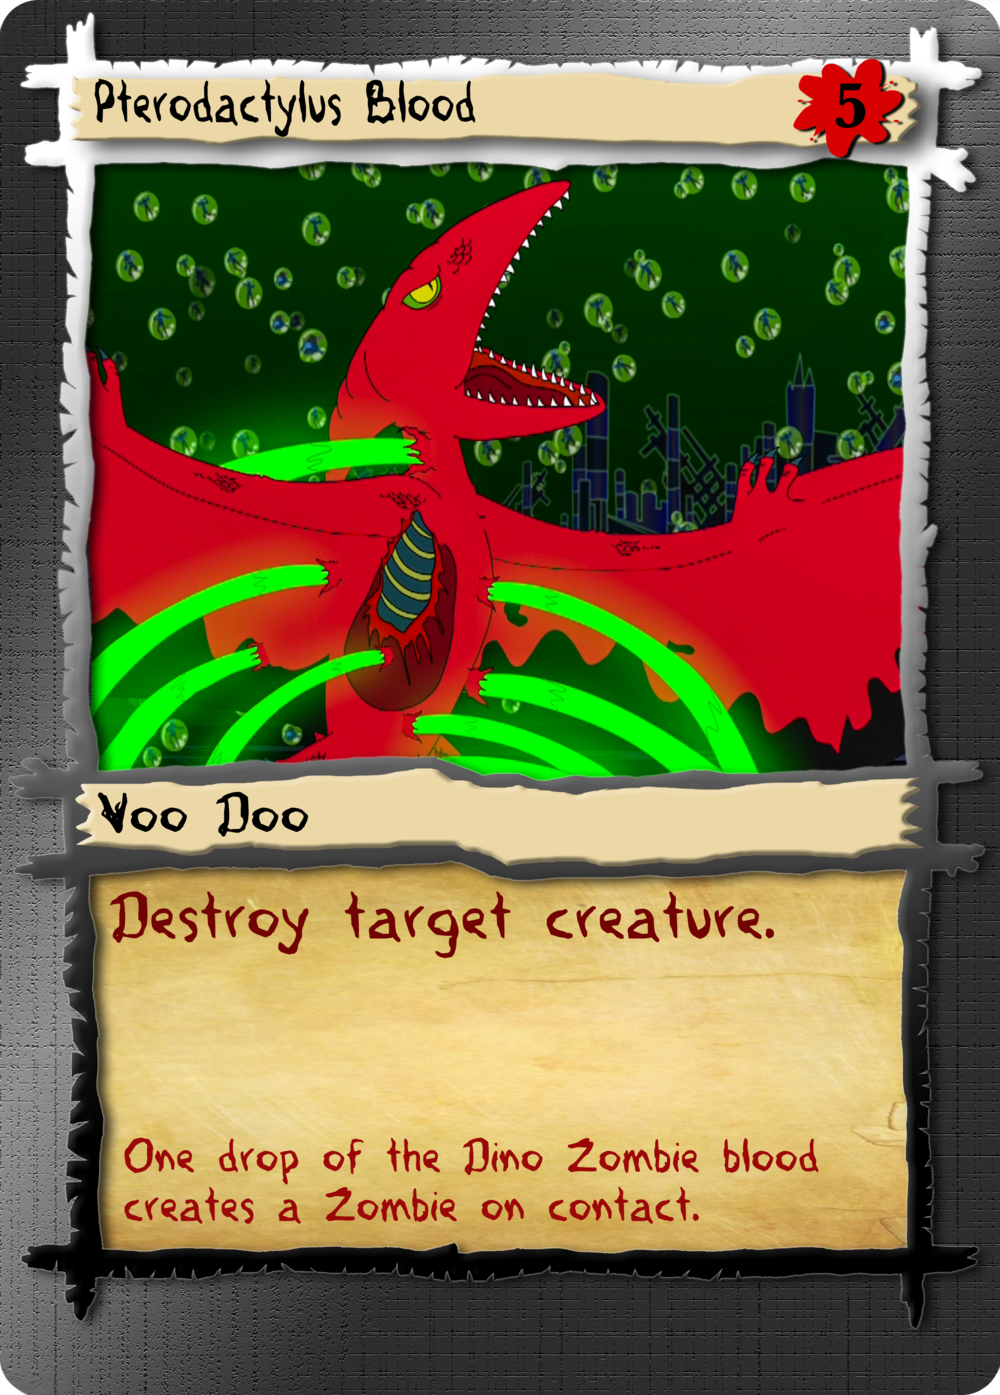 20_Pterodactylus blood.png